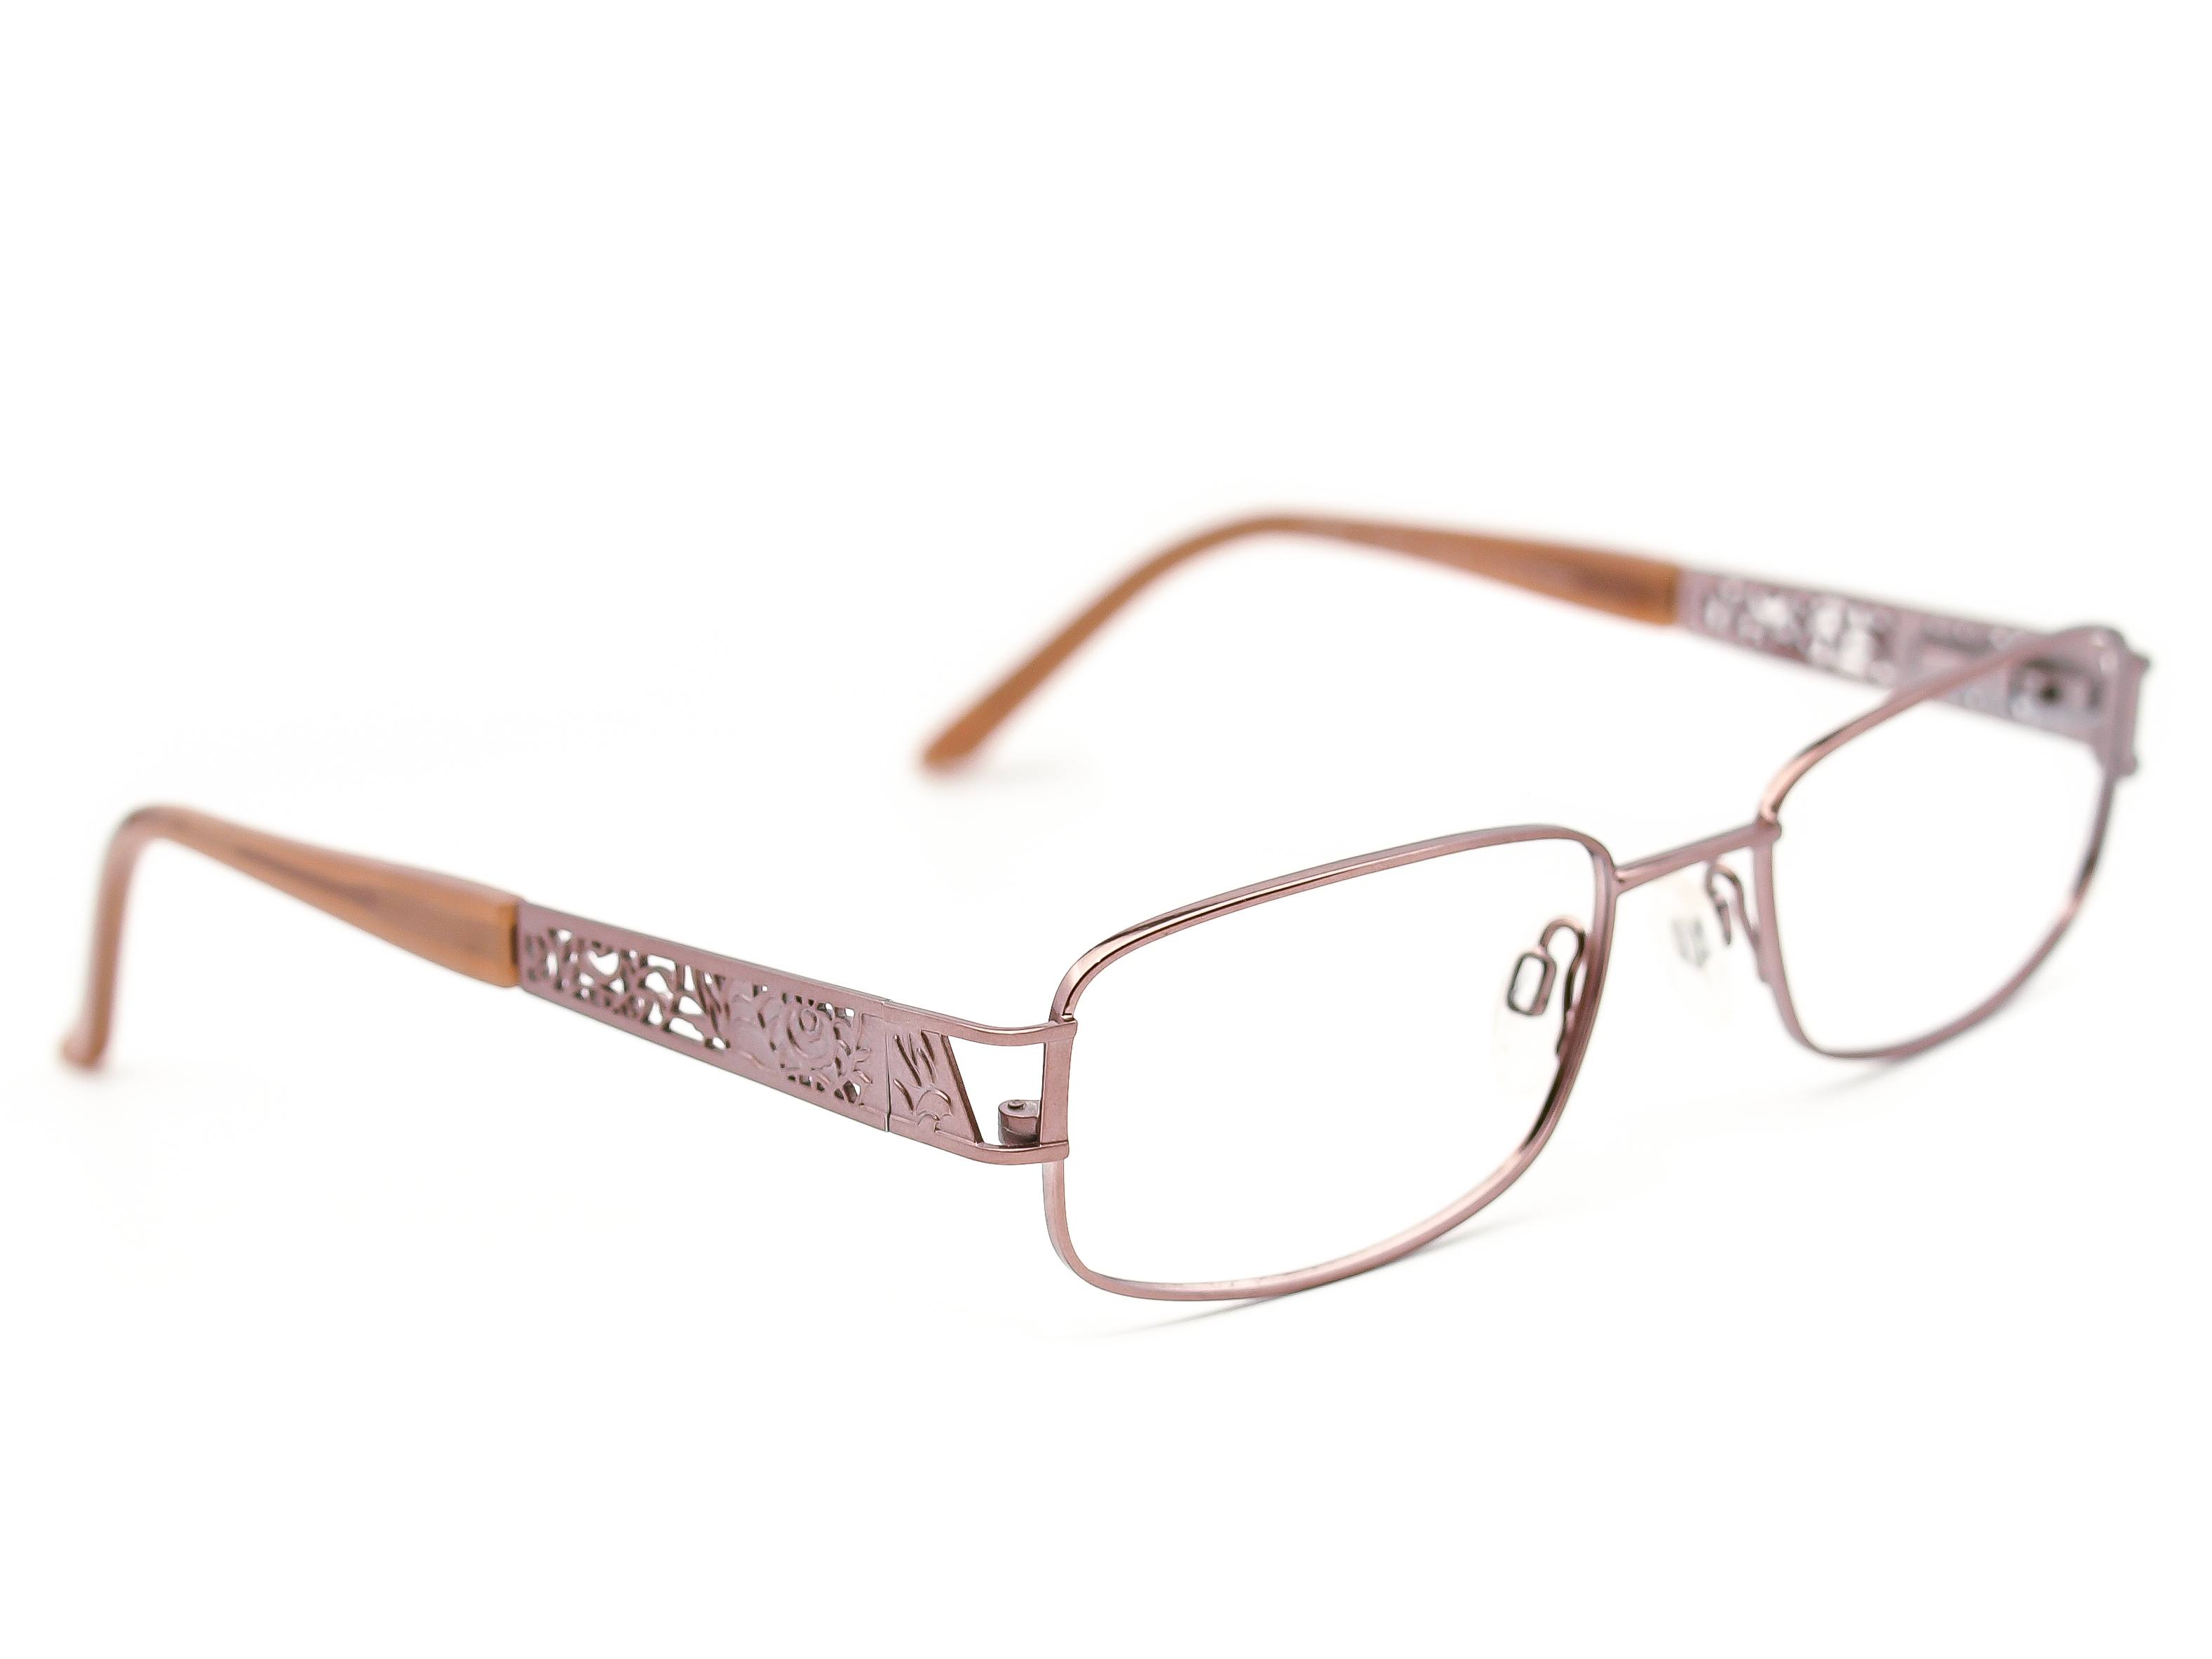 Charmant Aristar AR16353 Color-515 Eyeglasses